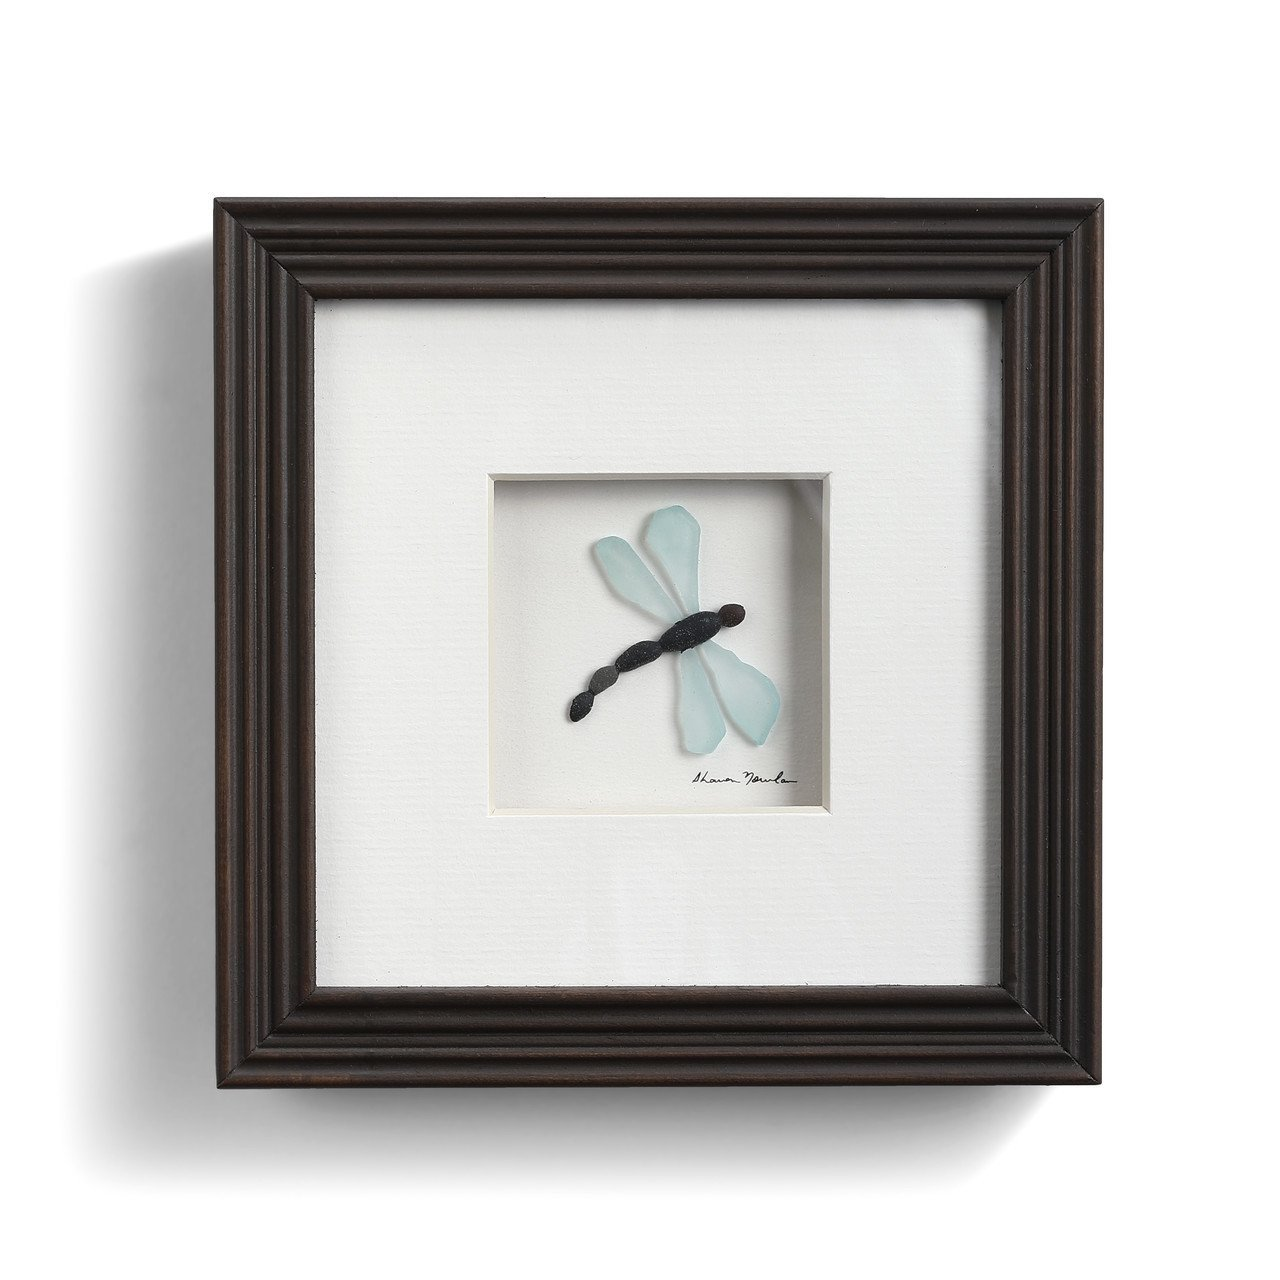 DRAGONFLY WALL A - 6 INCH WALL ART - 1004370076 - Molly's! A Chic and Unique Boutique